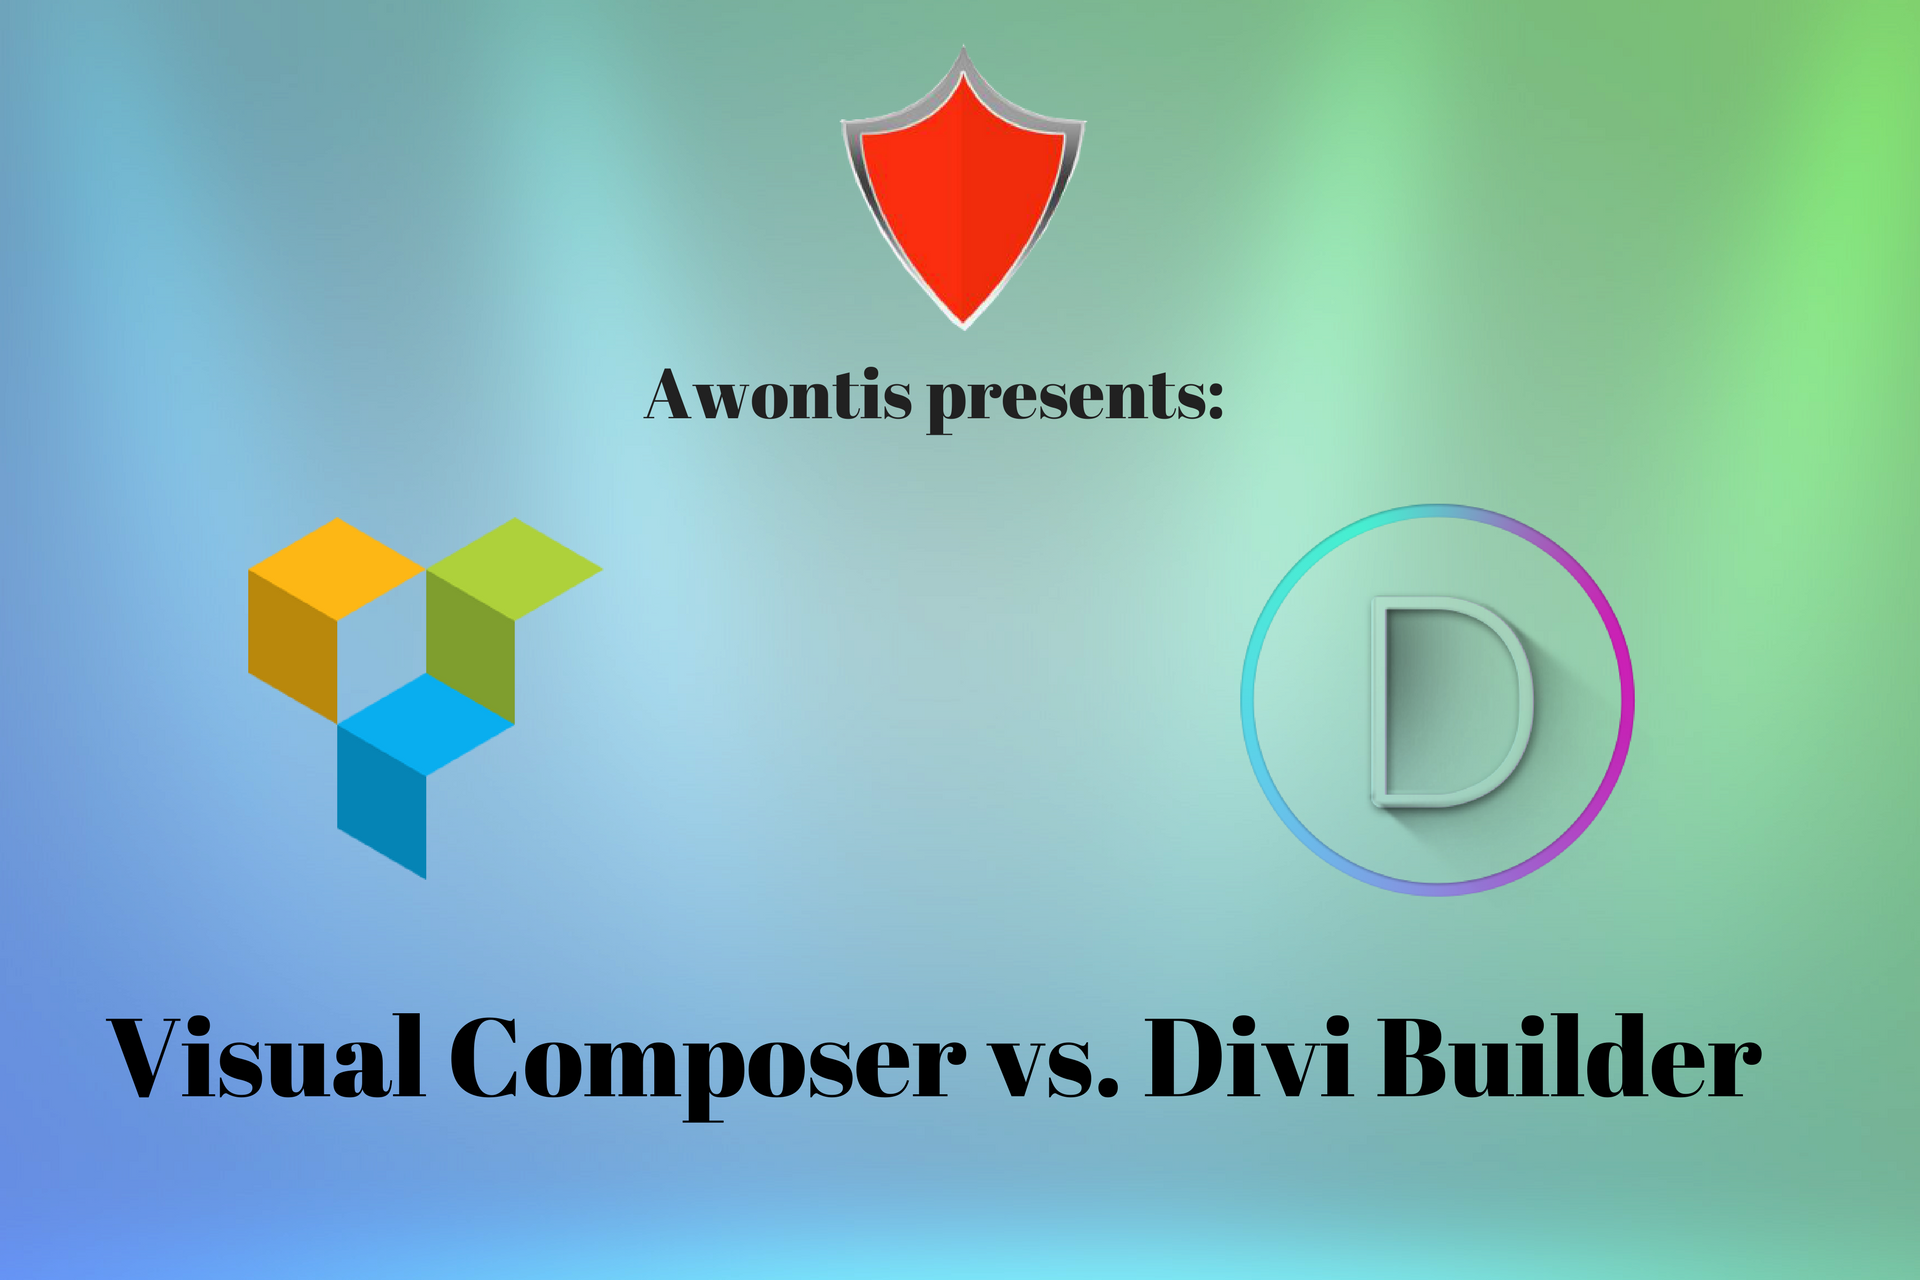 Visual Composer vs. Divi Builder